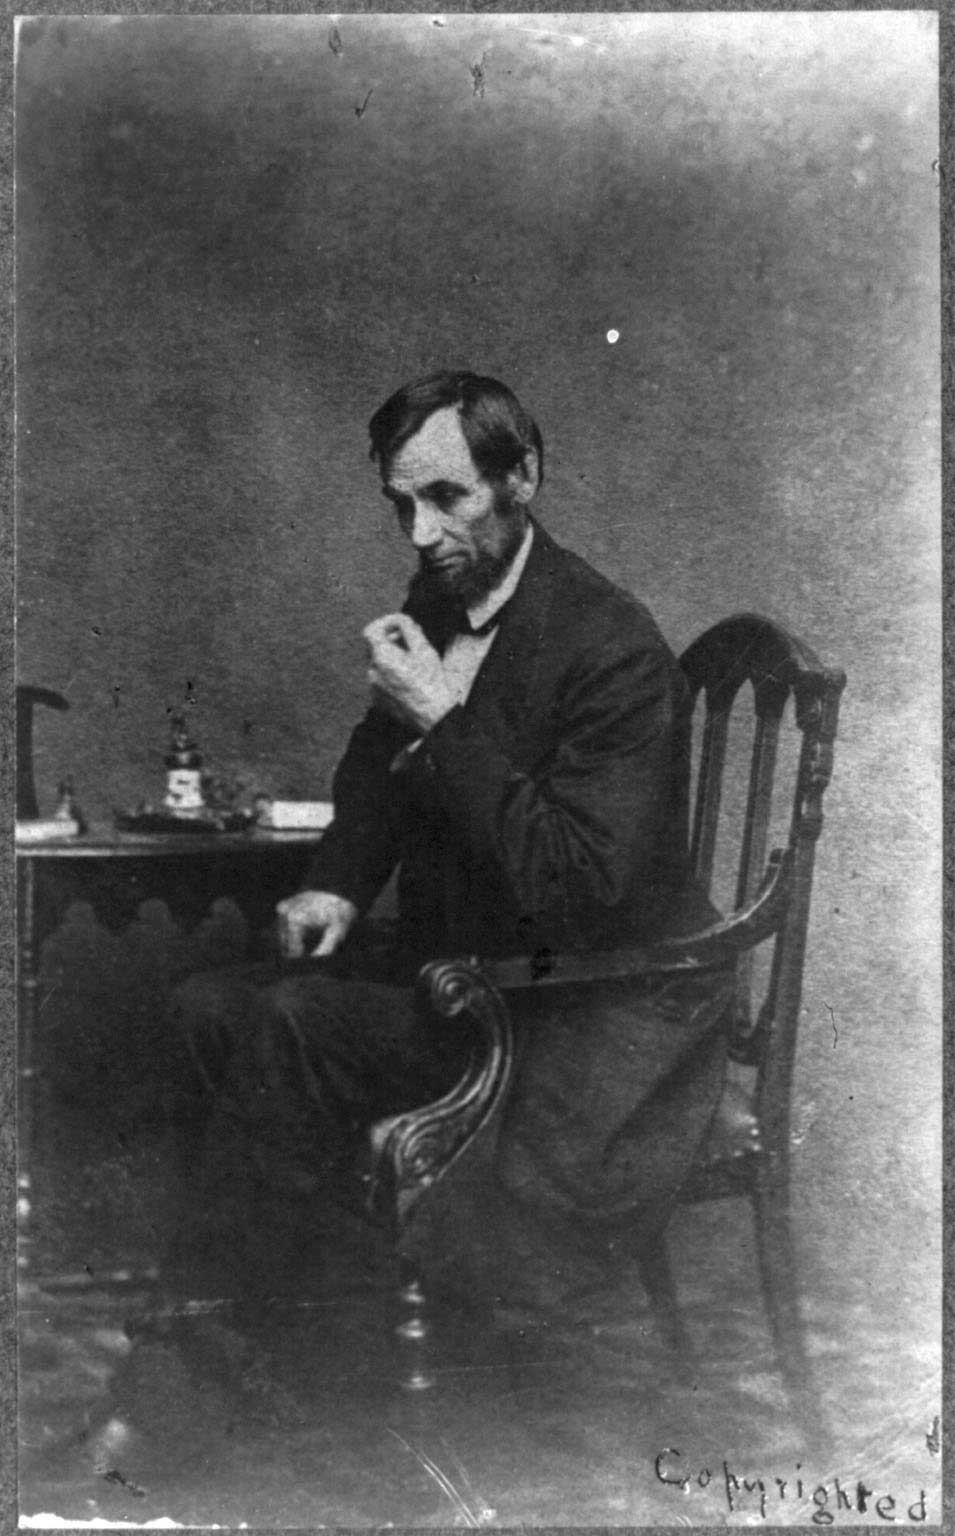 Abraham Lincoln in a reflective pose, in Washington, DC, May 16, 1861.